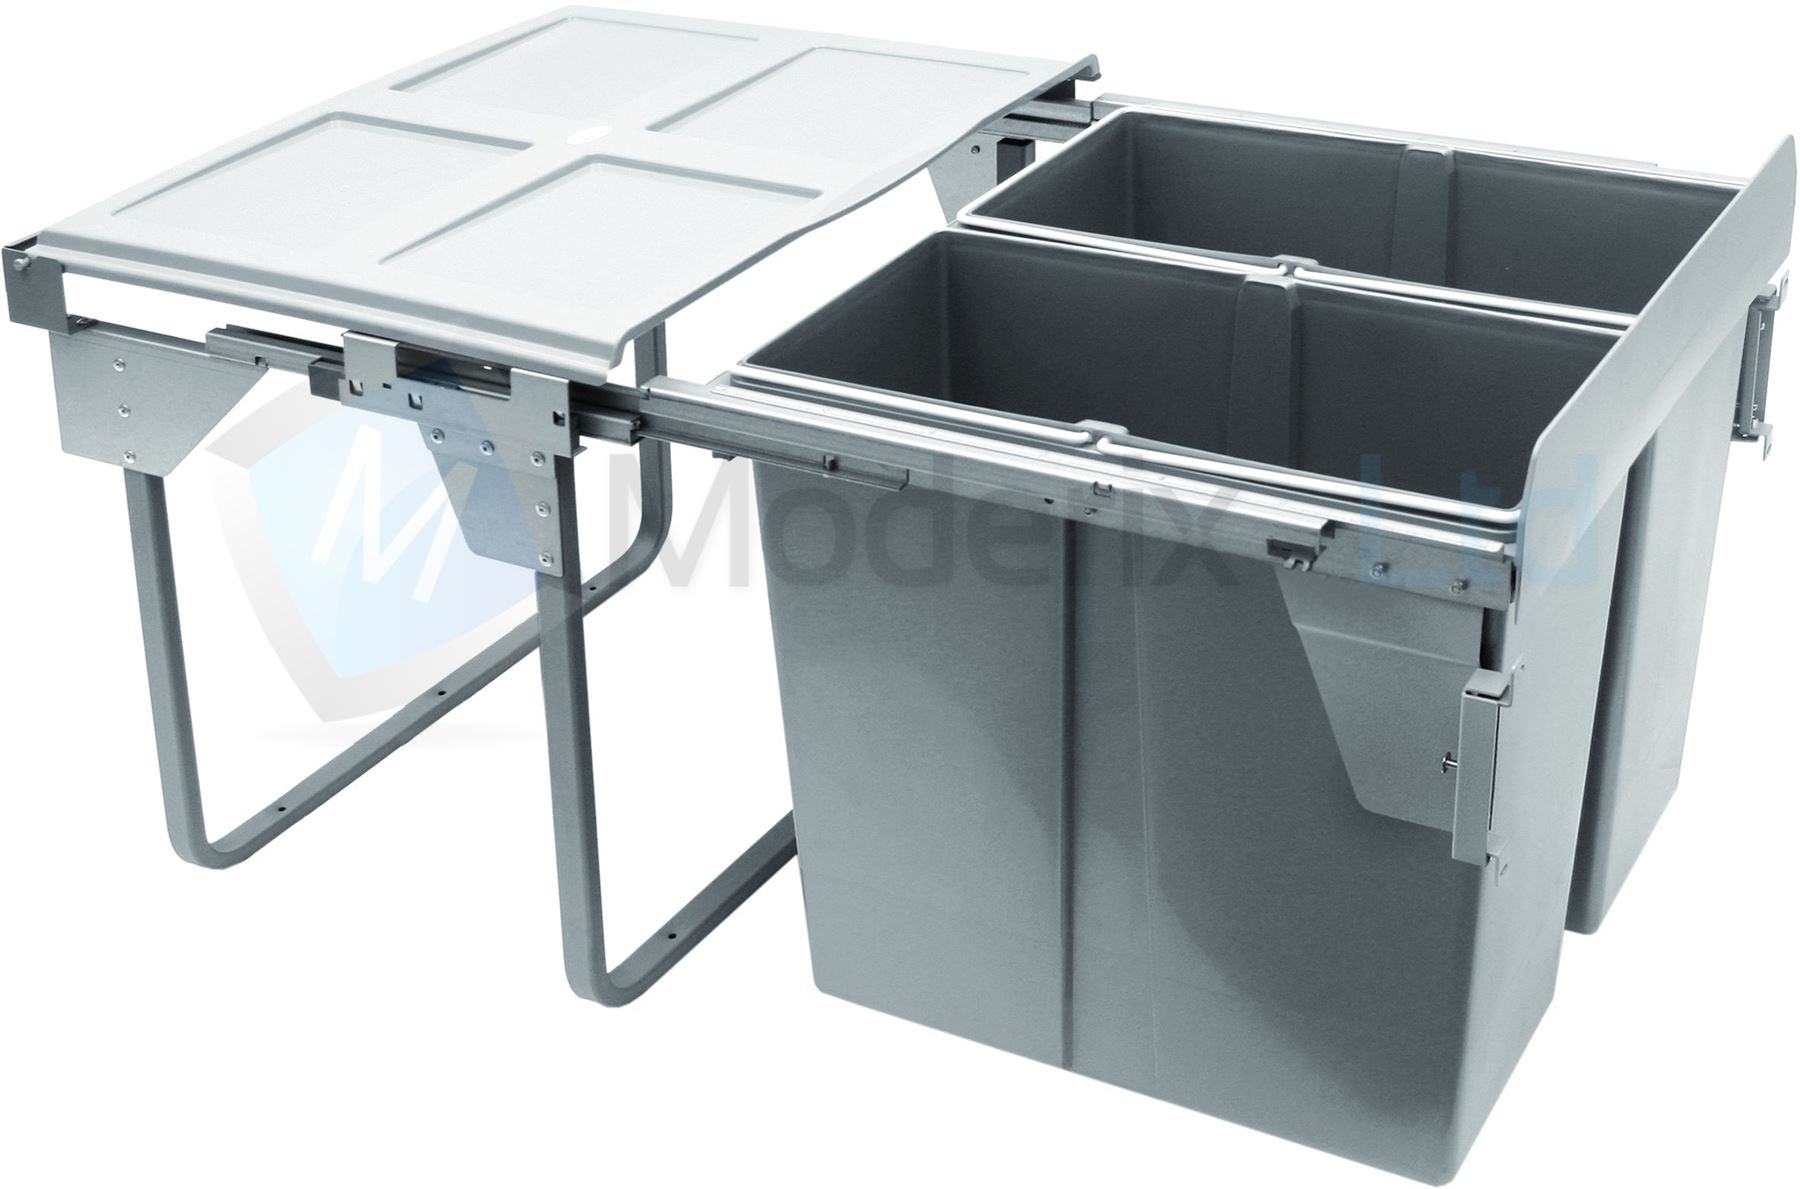 Kitchen Trash And Recycle Bins: Kitchen Pull Out Plastic Recycling Bin, Waste Bin Full